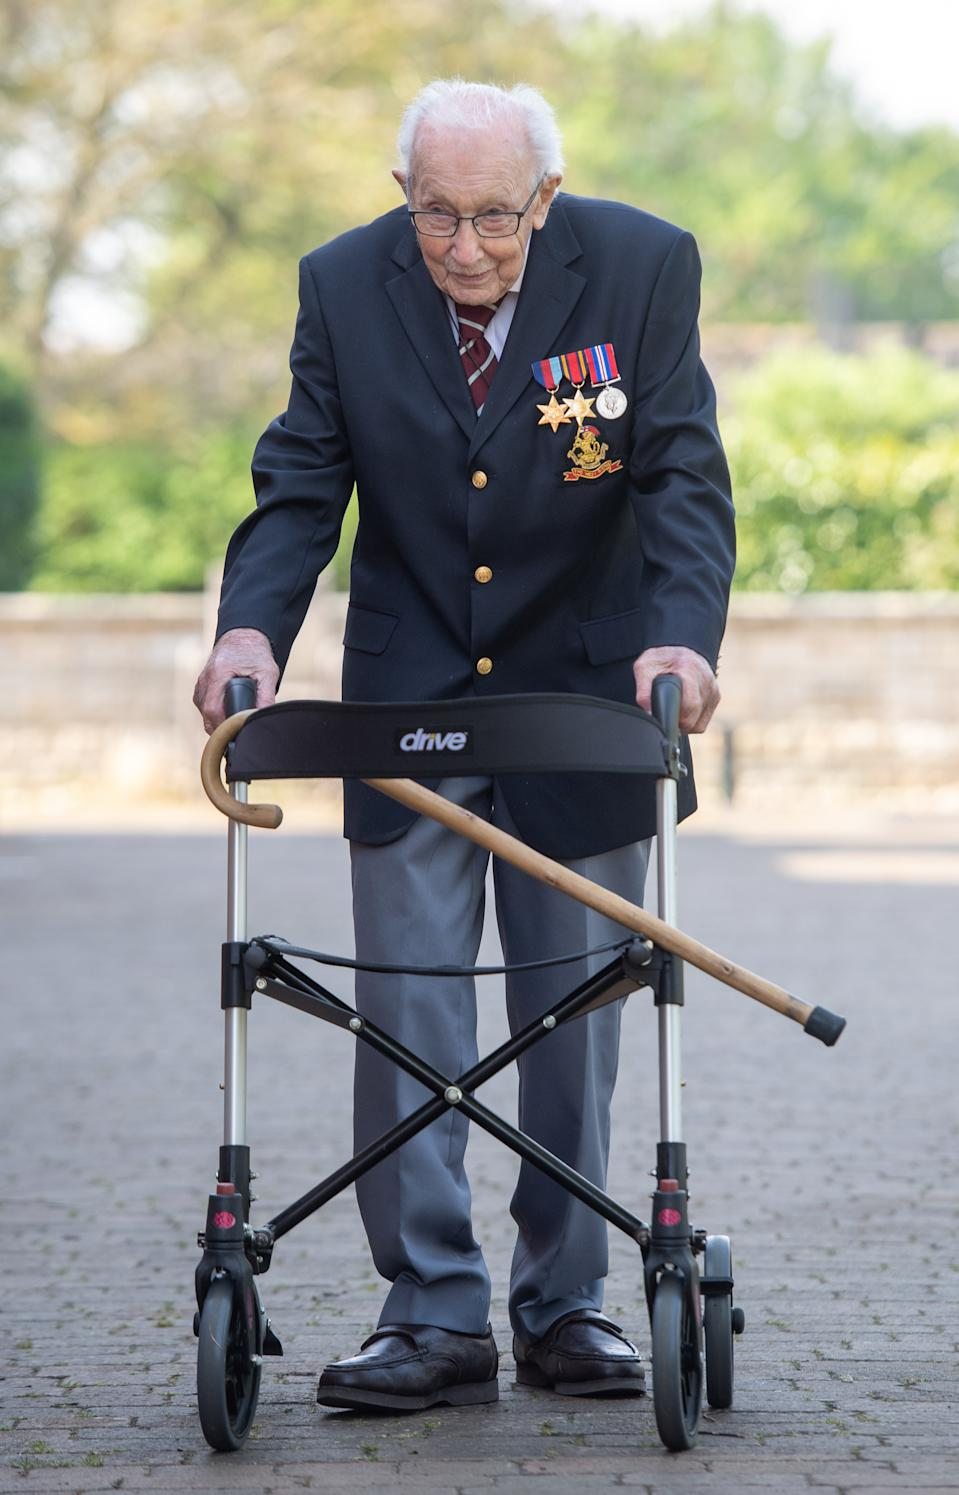 99-year-old war veteran Captain Tom Moore at his home in Marston Moretaine, Bedfordshire, after he achieved his goal of 100 laps of his garden - raising more than 12 million pounds for the NHS. (Photo by Joe Giddens/PA Images via Getty Images)